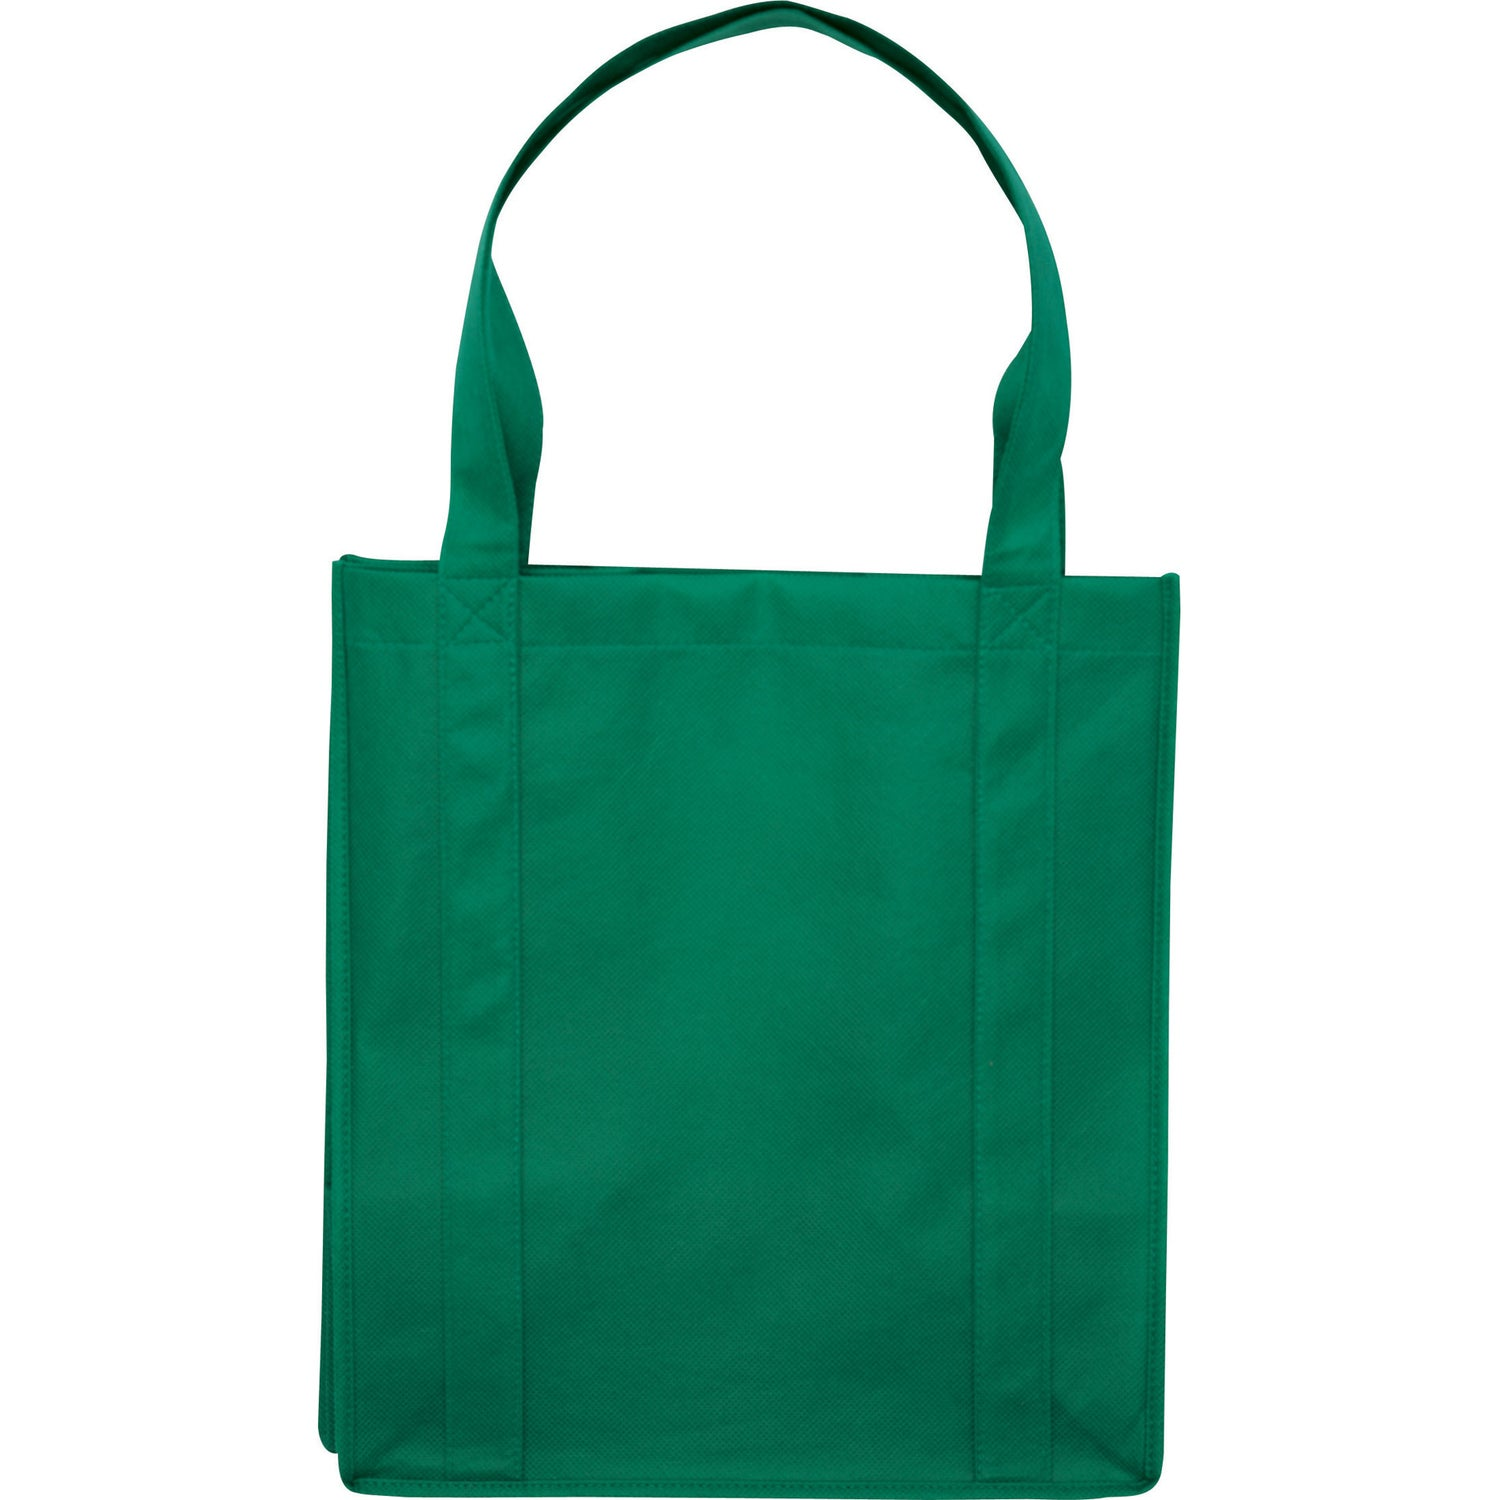 c585c2e1d CLICK HERE to Order Hercules Shopping Bags Printed with Your Logo for  1.21  Ea.